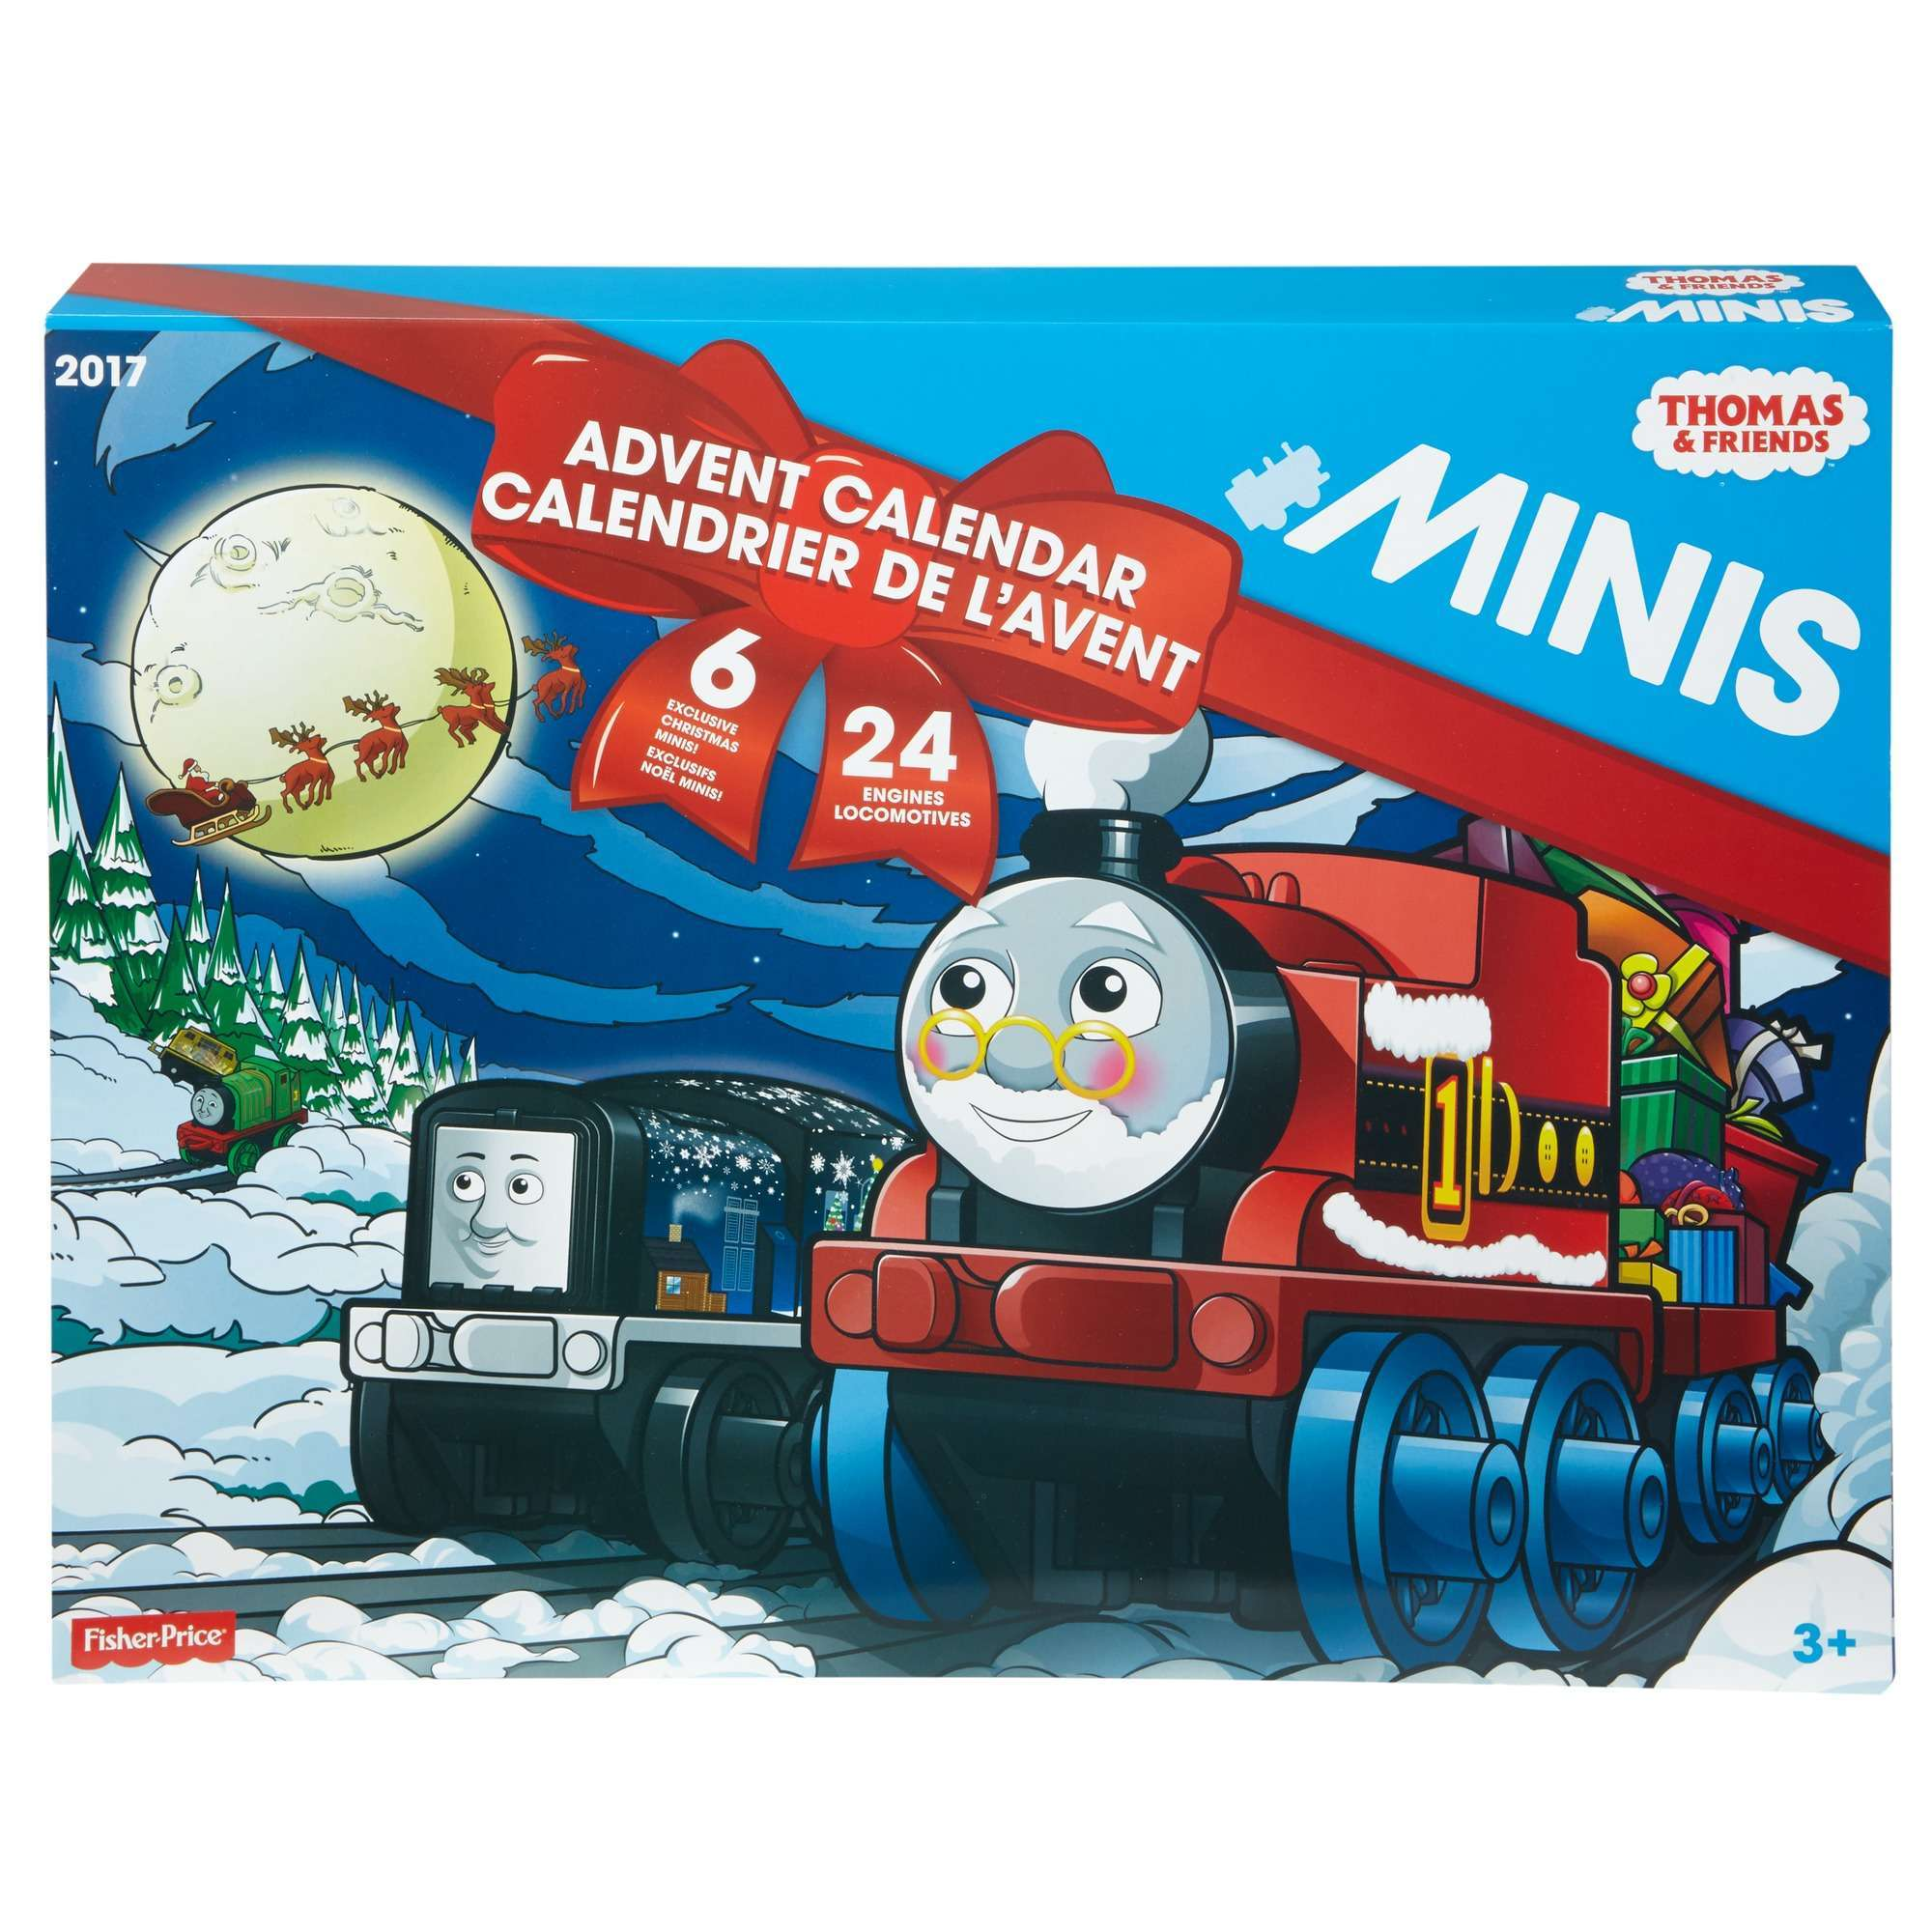 Thomas & Friends MINIS 2017 Advent Calendar